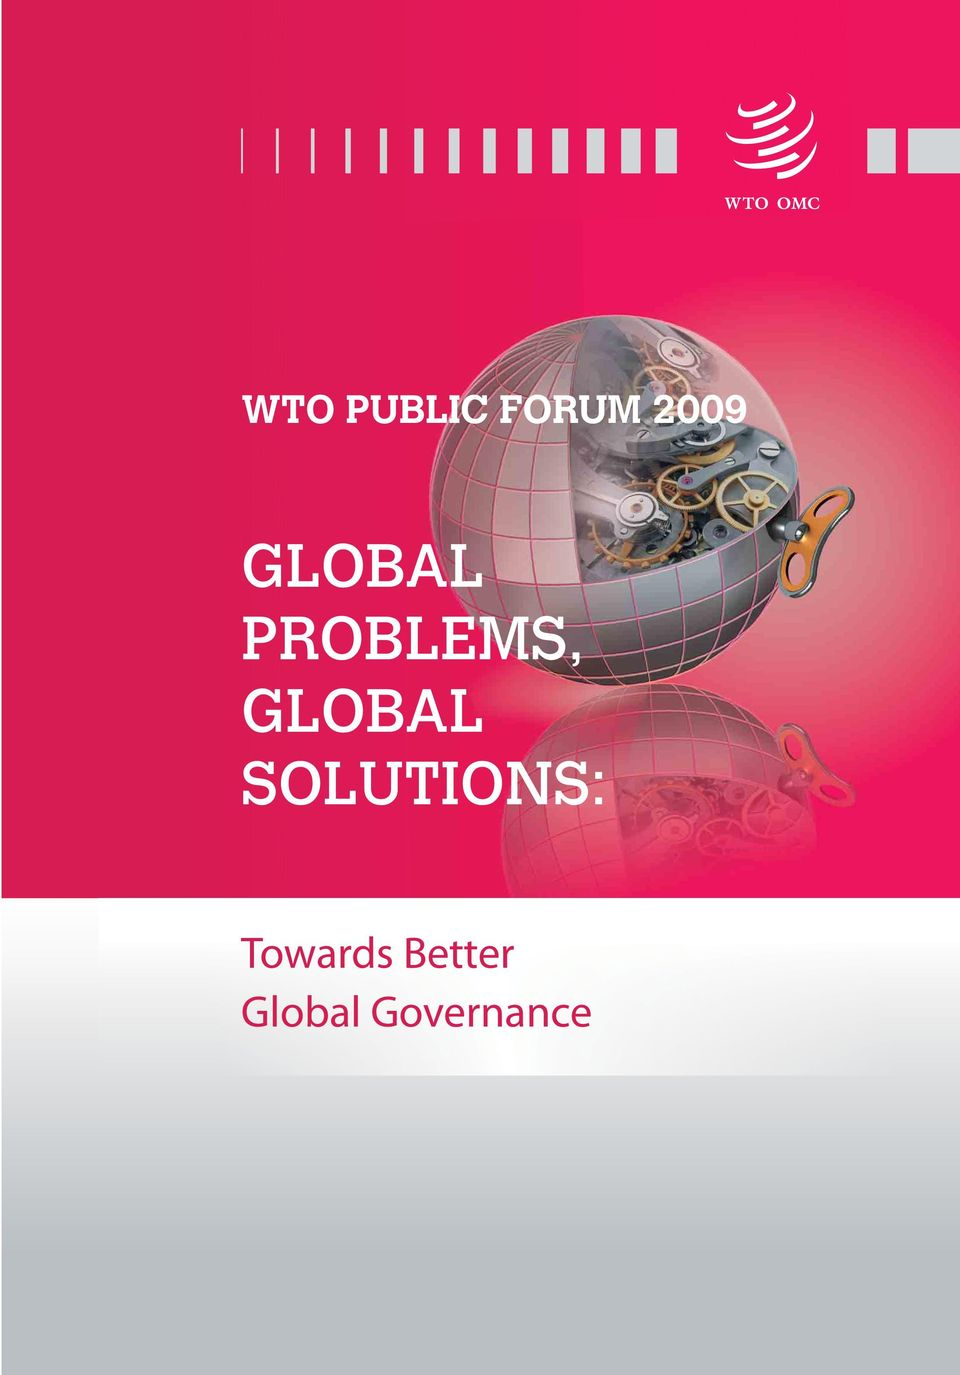 GLOBAL SOLUTIONS: